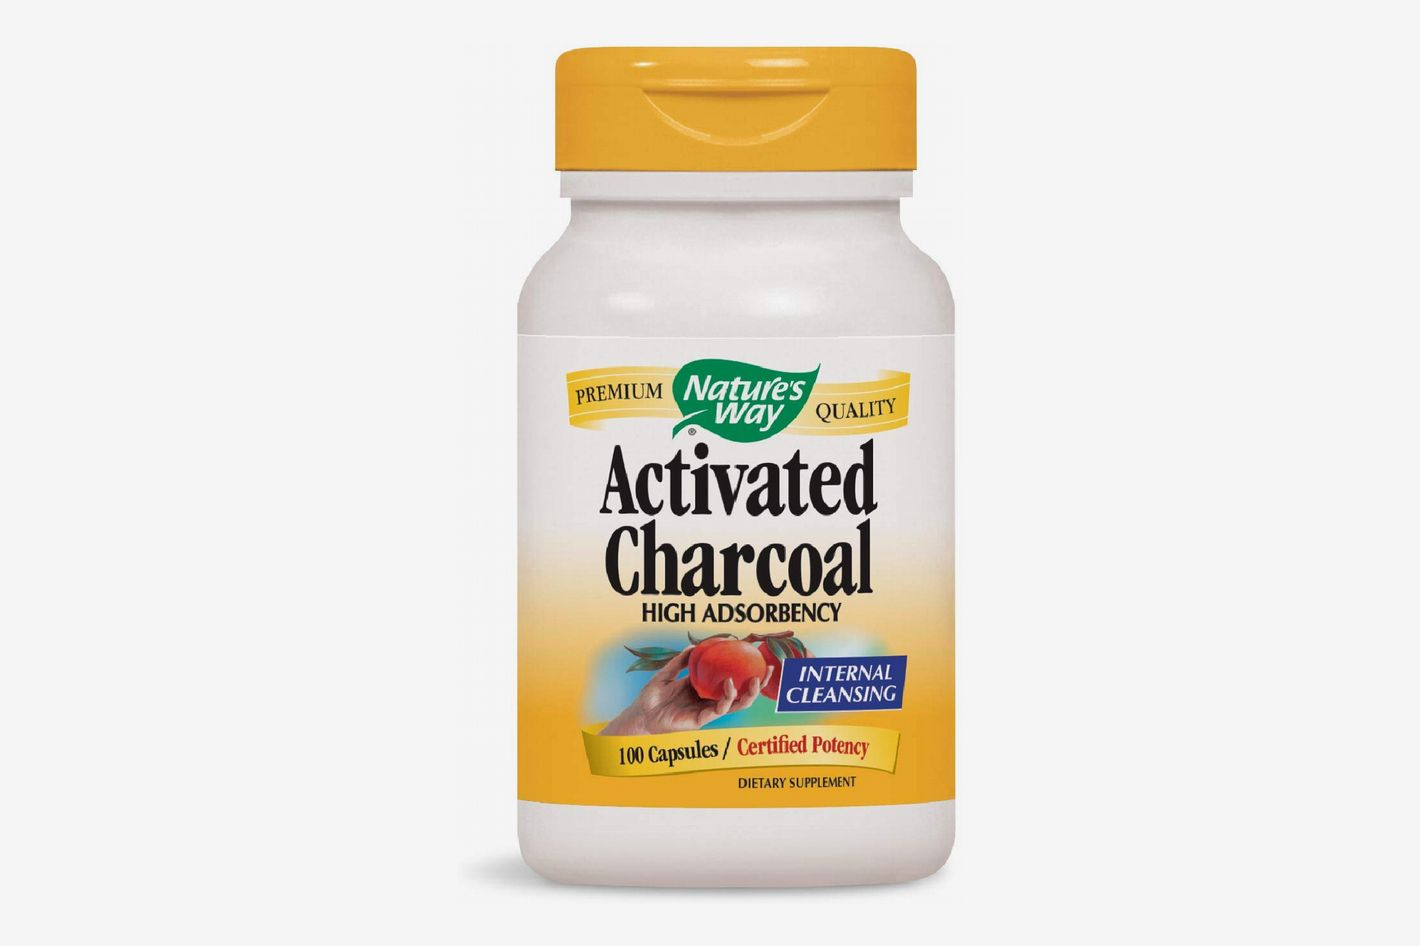 Nature's Way Charcoal Activated 100 Capsules